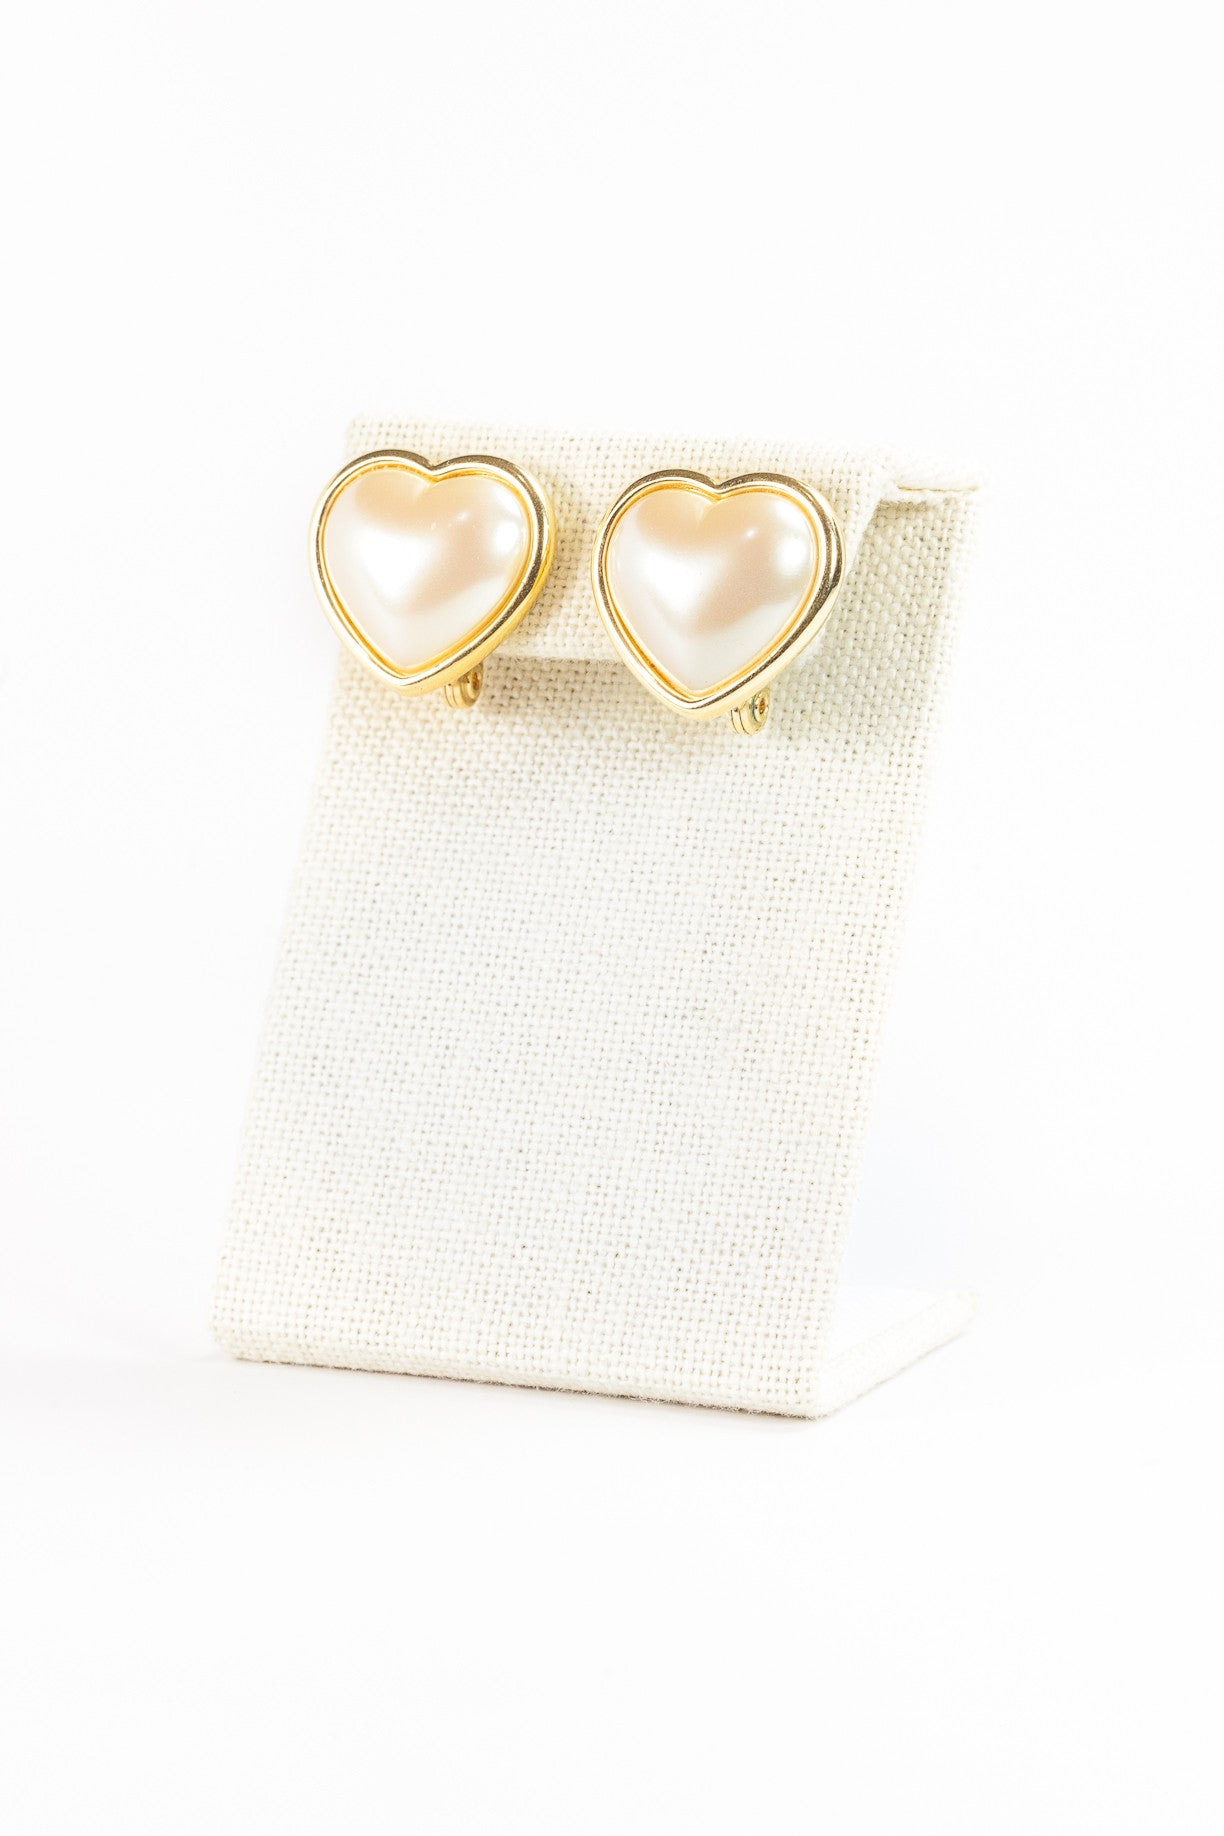 60's__Monet__Pearl Heart Clips